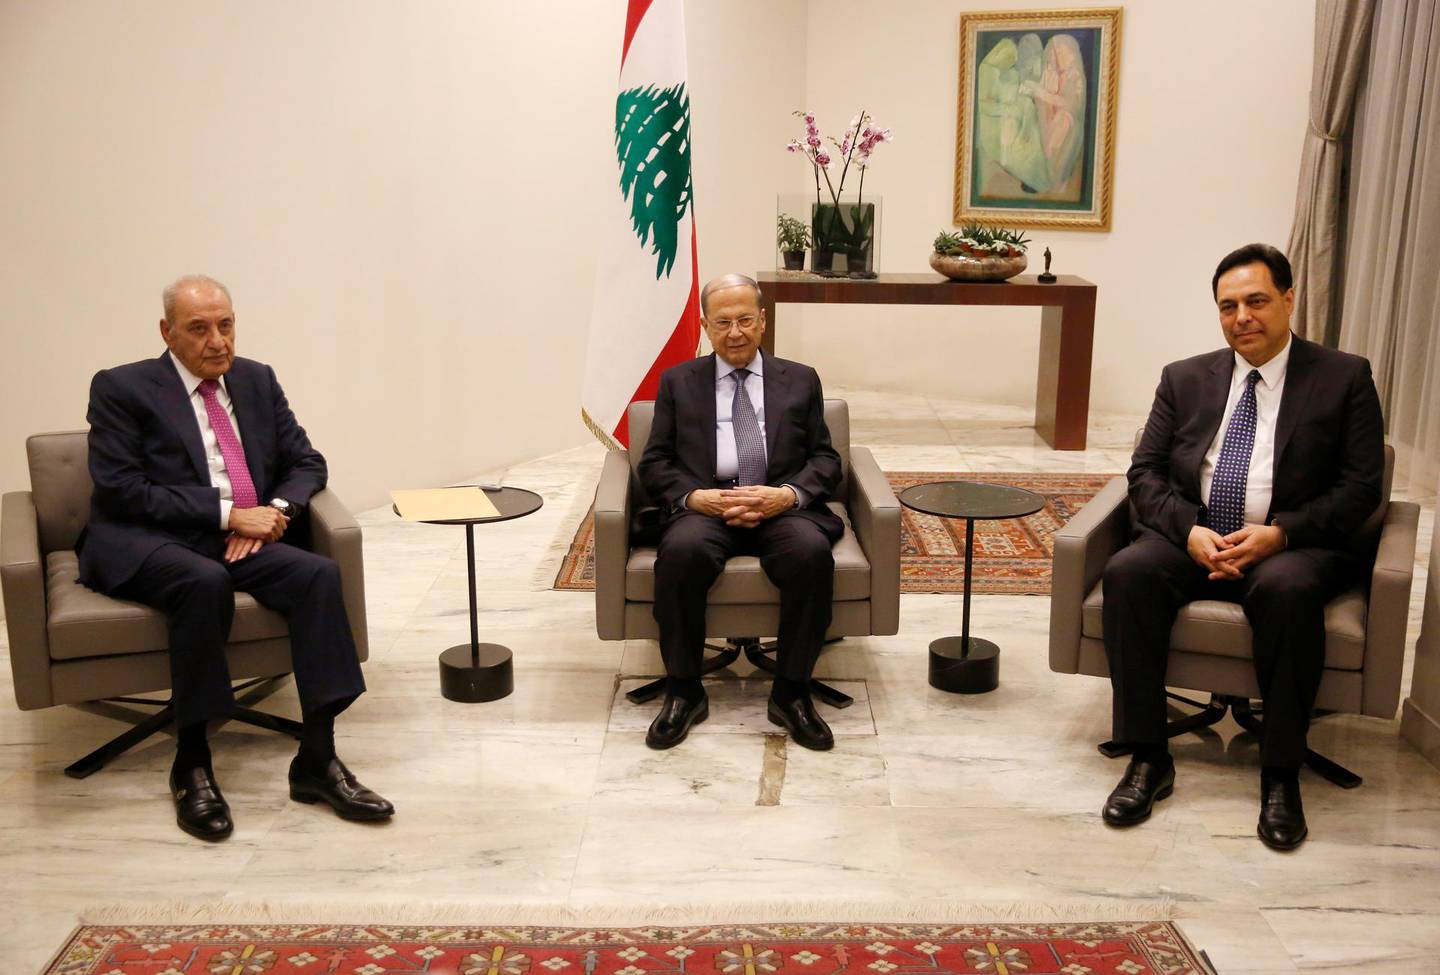 Lebanese President Michel Aoun, center, meets with Lebanese newly-assigned Prime Minister, Hassan Diab, right, and Parliament Speaker Nabih Berri, left, at the presidential palace, in Baabda, east of Beirut, Lebanon, Thursday, Dec. 19, 2019.  Aoun named Diab as prime minister after a day of consultations with lawmakers in which he gained a simple majority of the 128-member parliament. Sixty-nine lawmakers, including the parliamentary bloc of the Shiite Hezbollah and Amal movements as well as lawmakers affiliated with President Michel Aoun gave him their votes. (AP Photo/Hussein Malla)